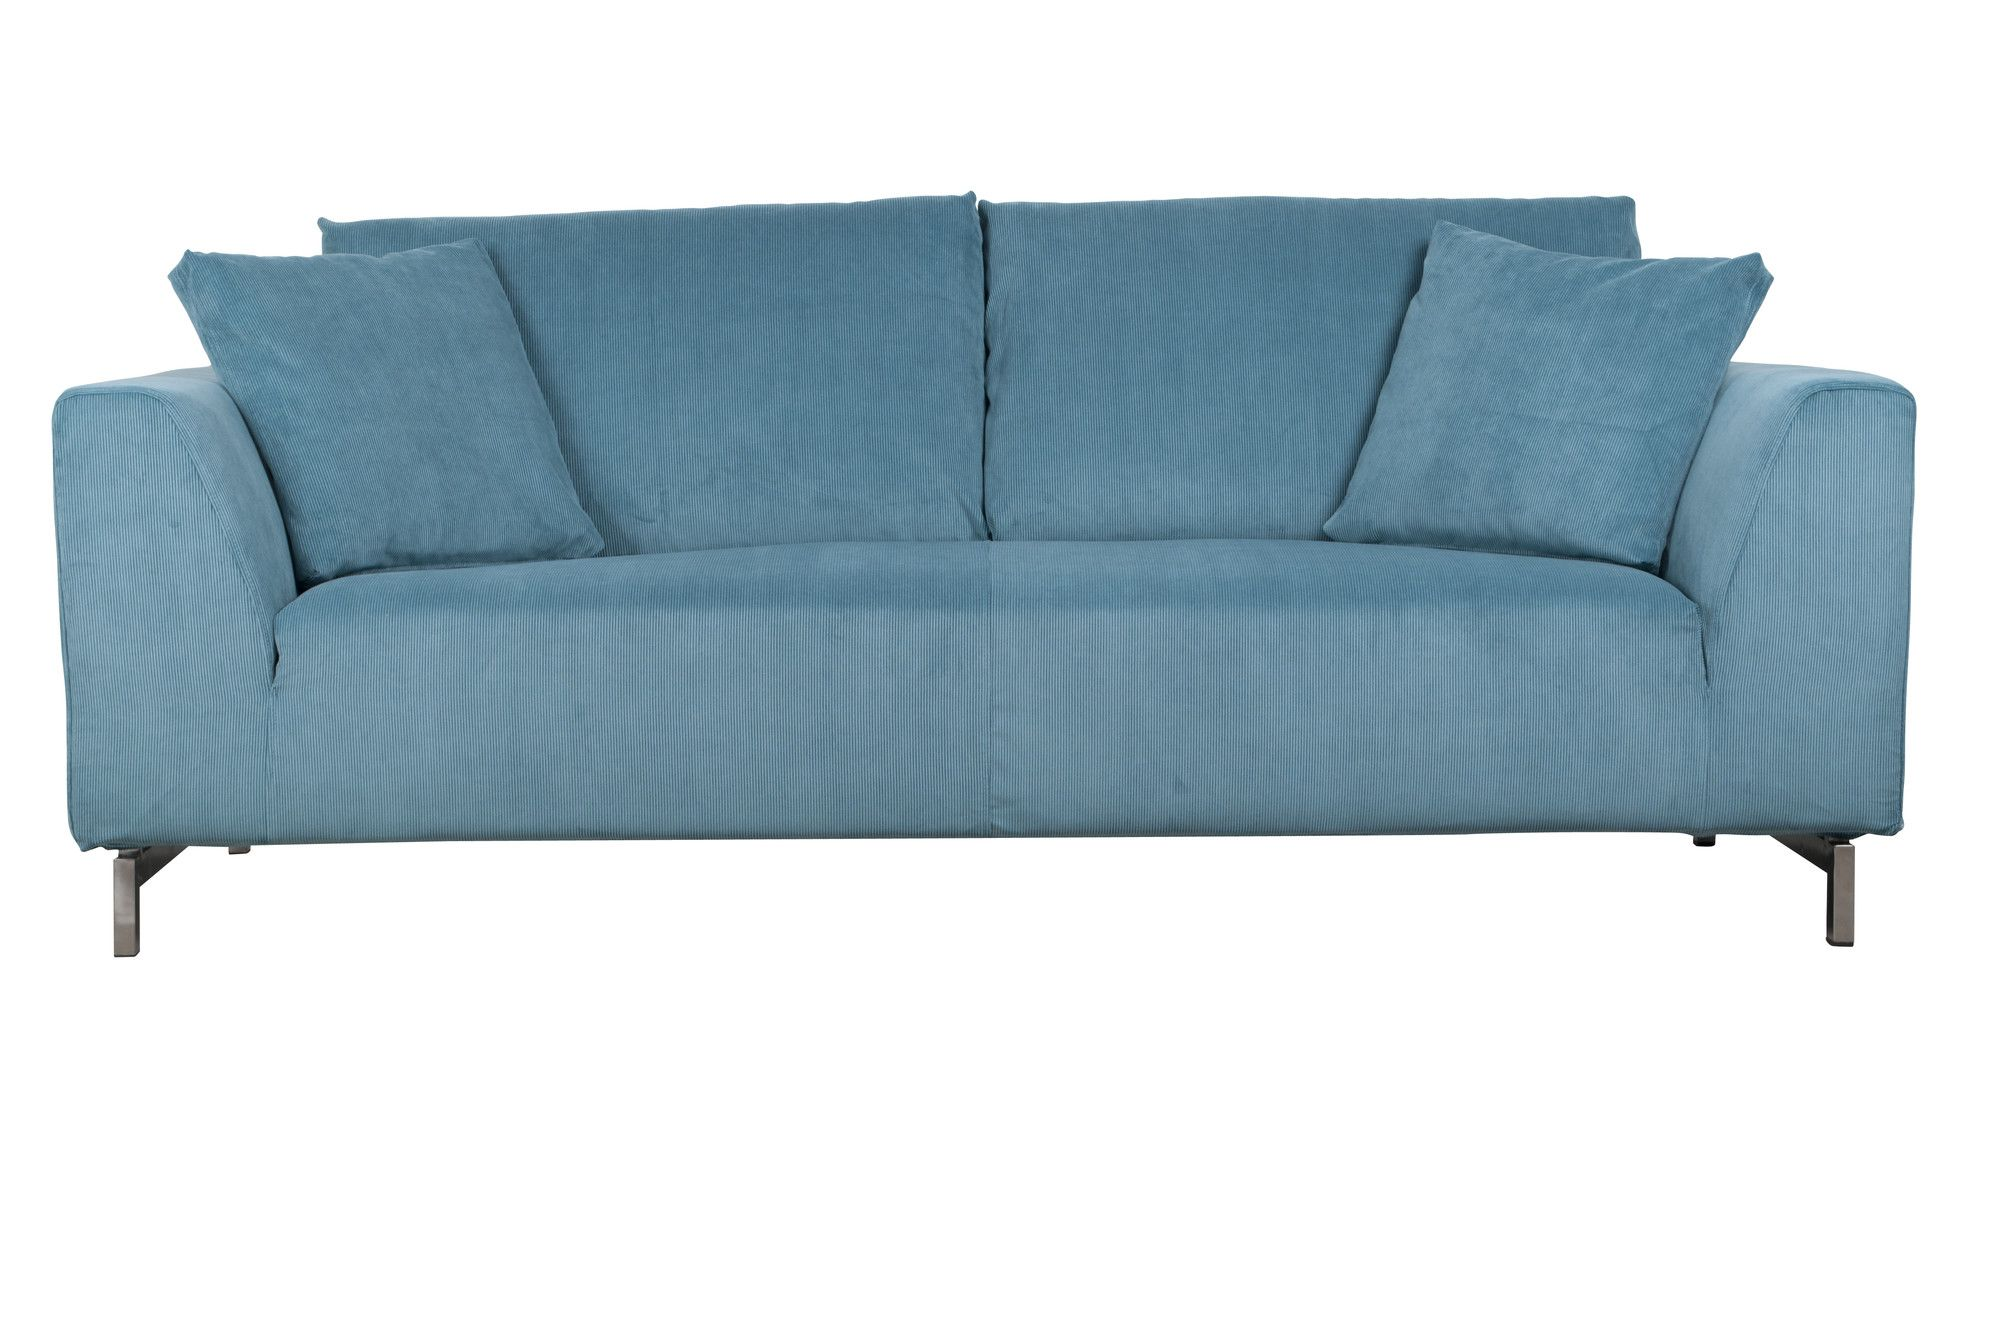 Küchensofa Retro Dragon Rib Bank Zuiver Blauw Banken Pinterest Banks And